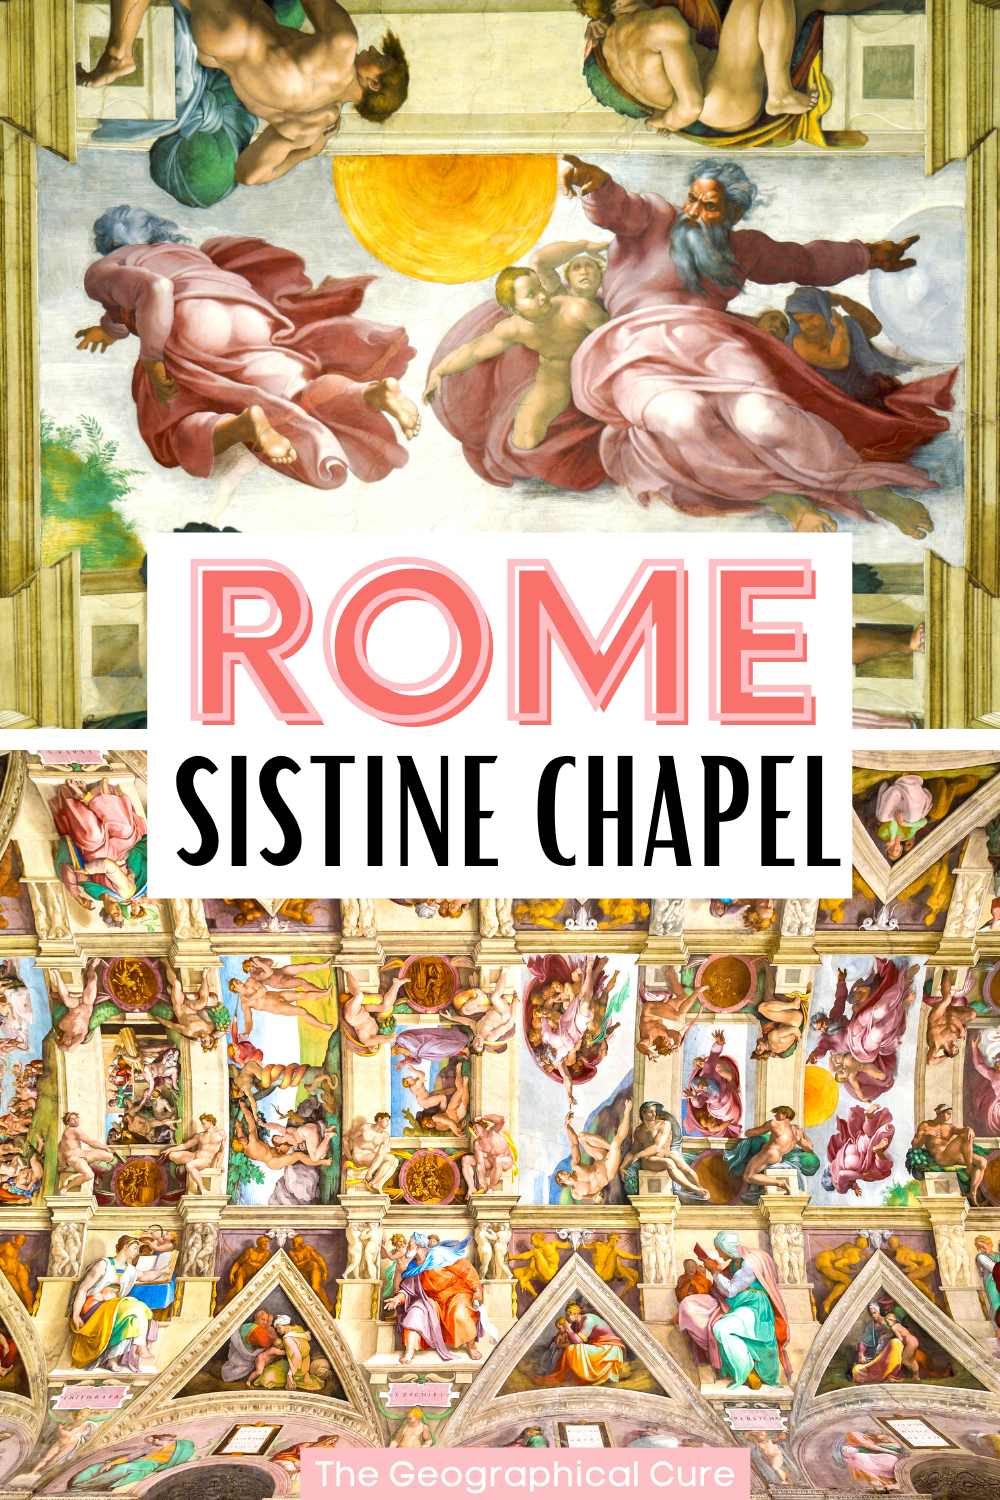 ultimate guide to Michelangelo's frescos in the Sistine Chapel in Vatican City